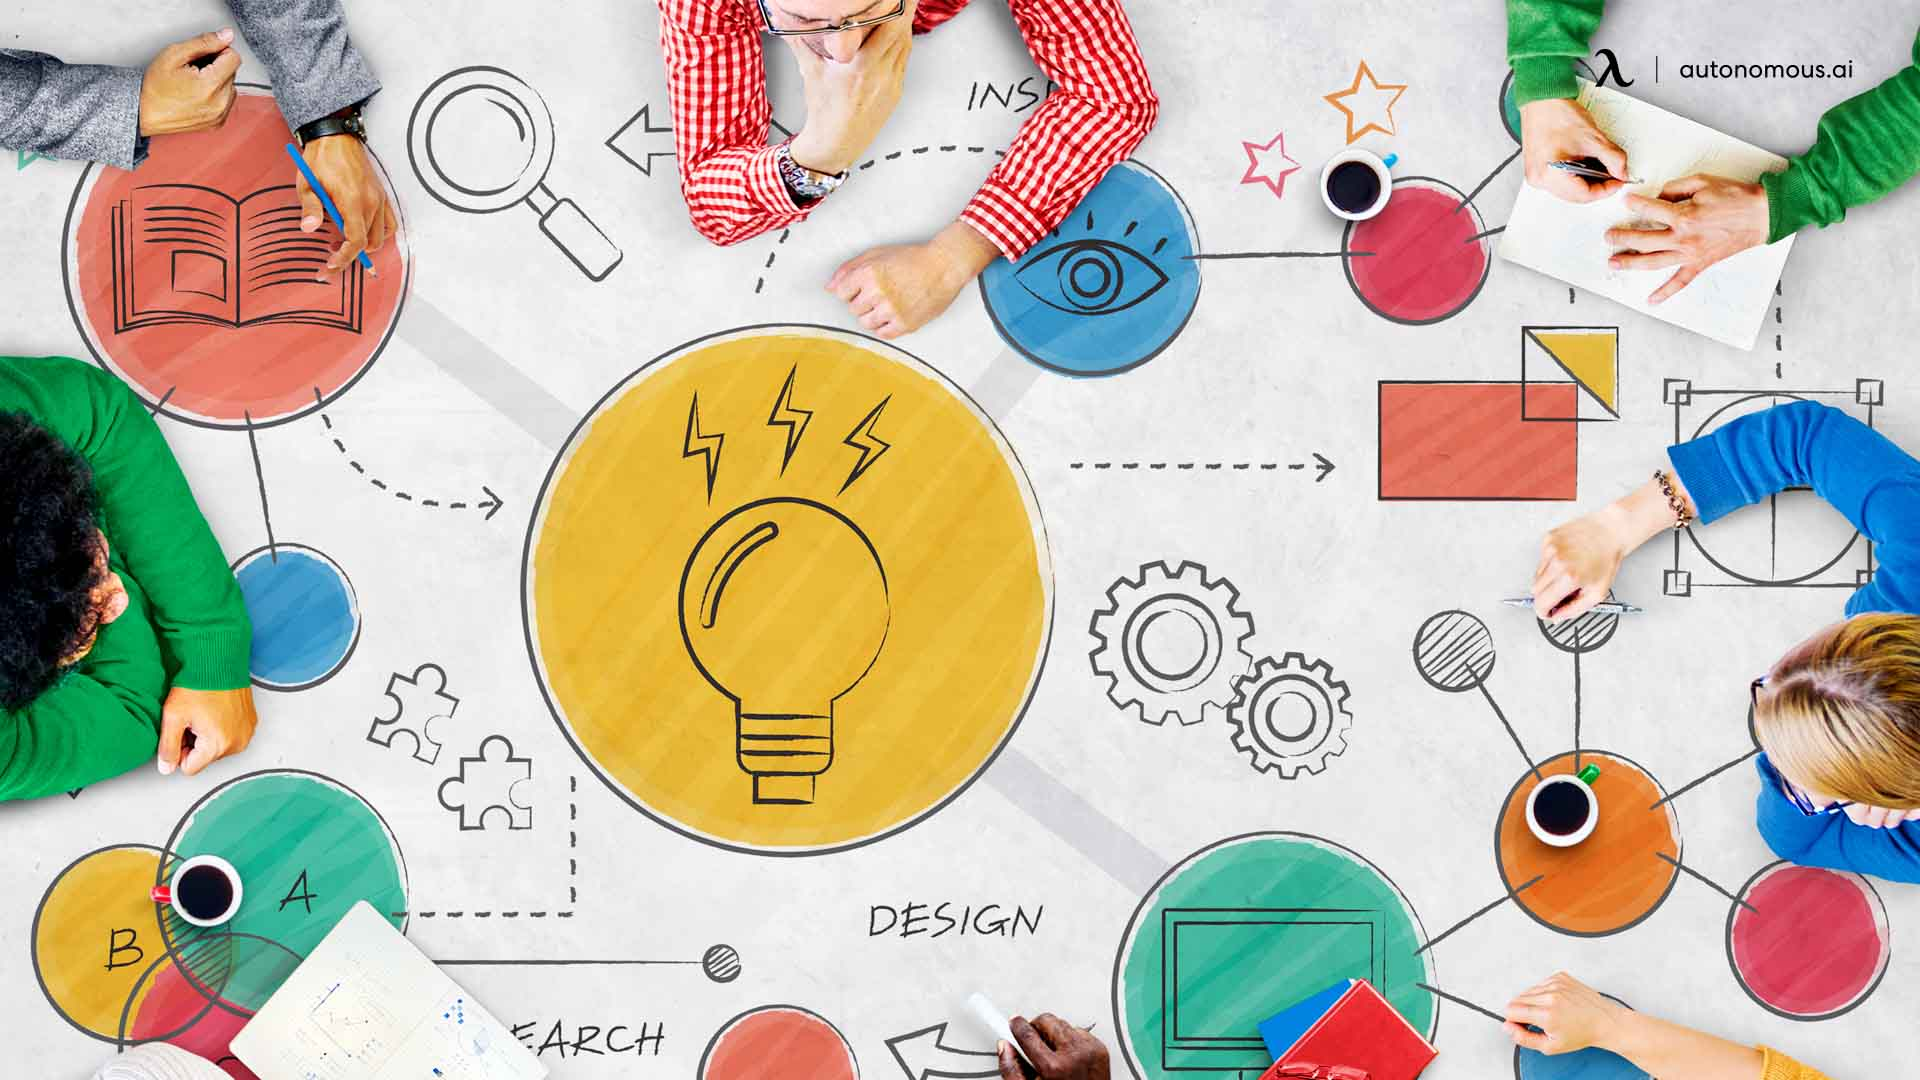 Boost the creativity of your employees